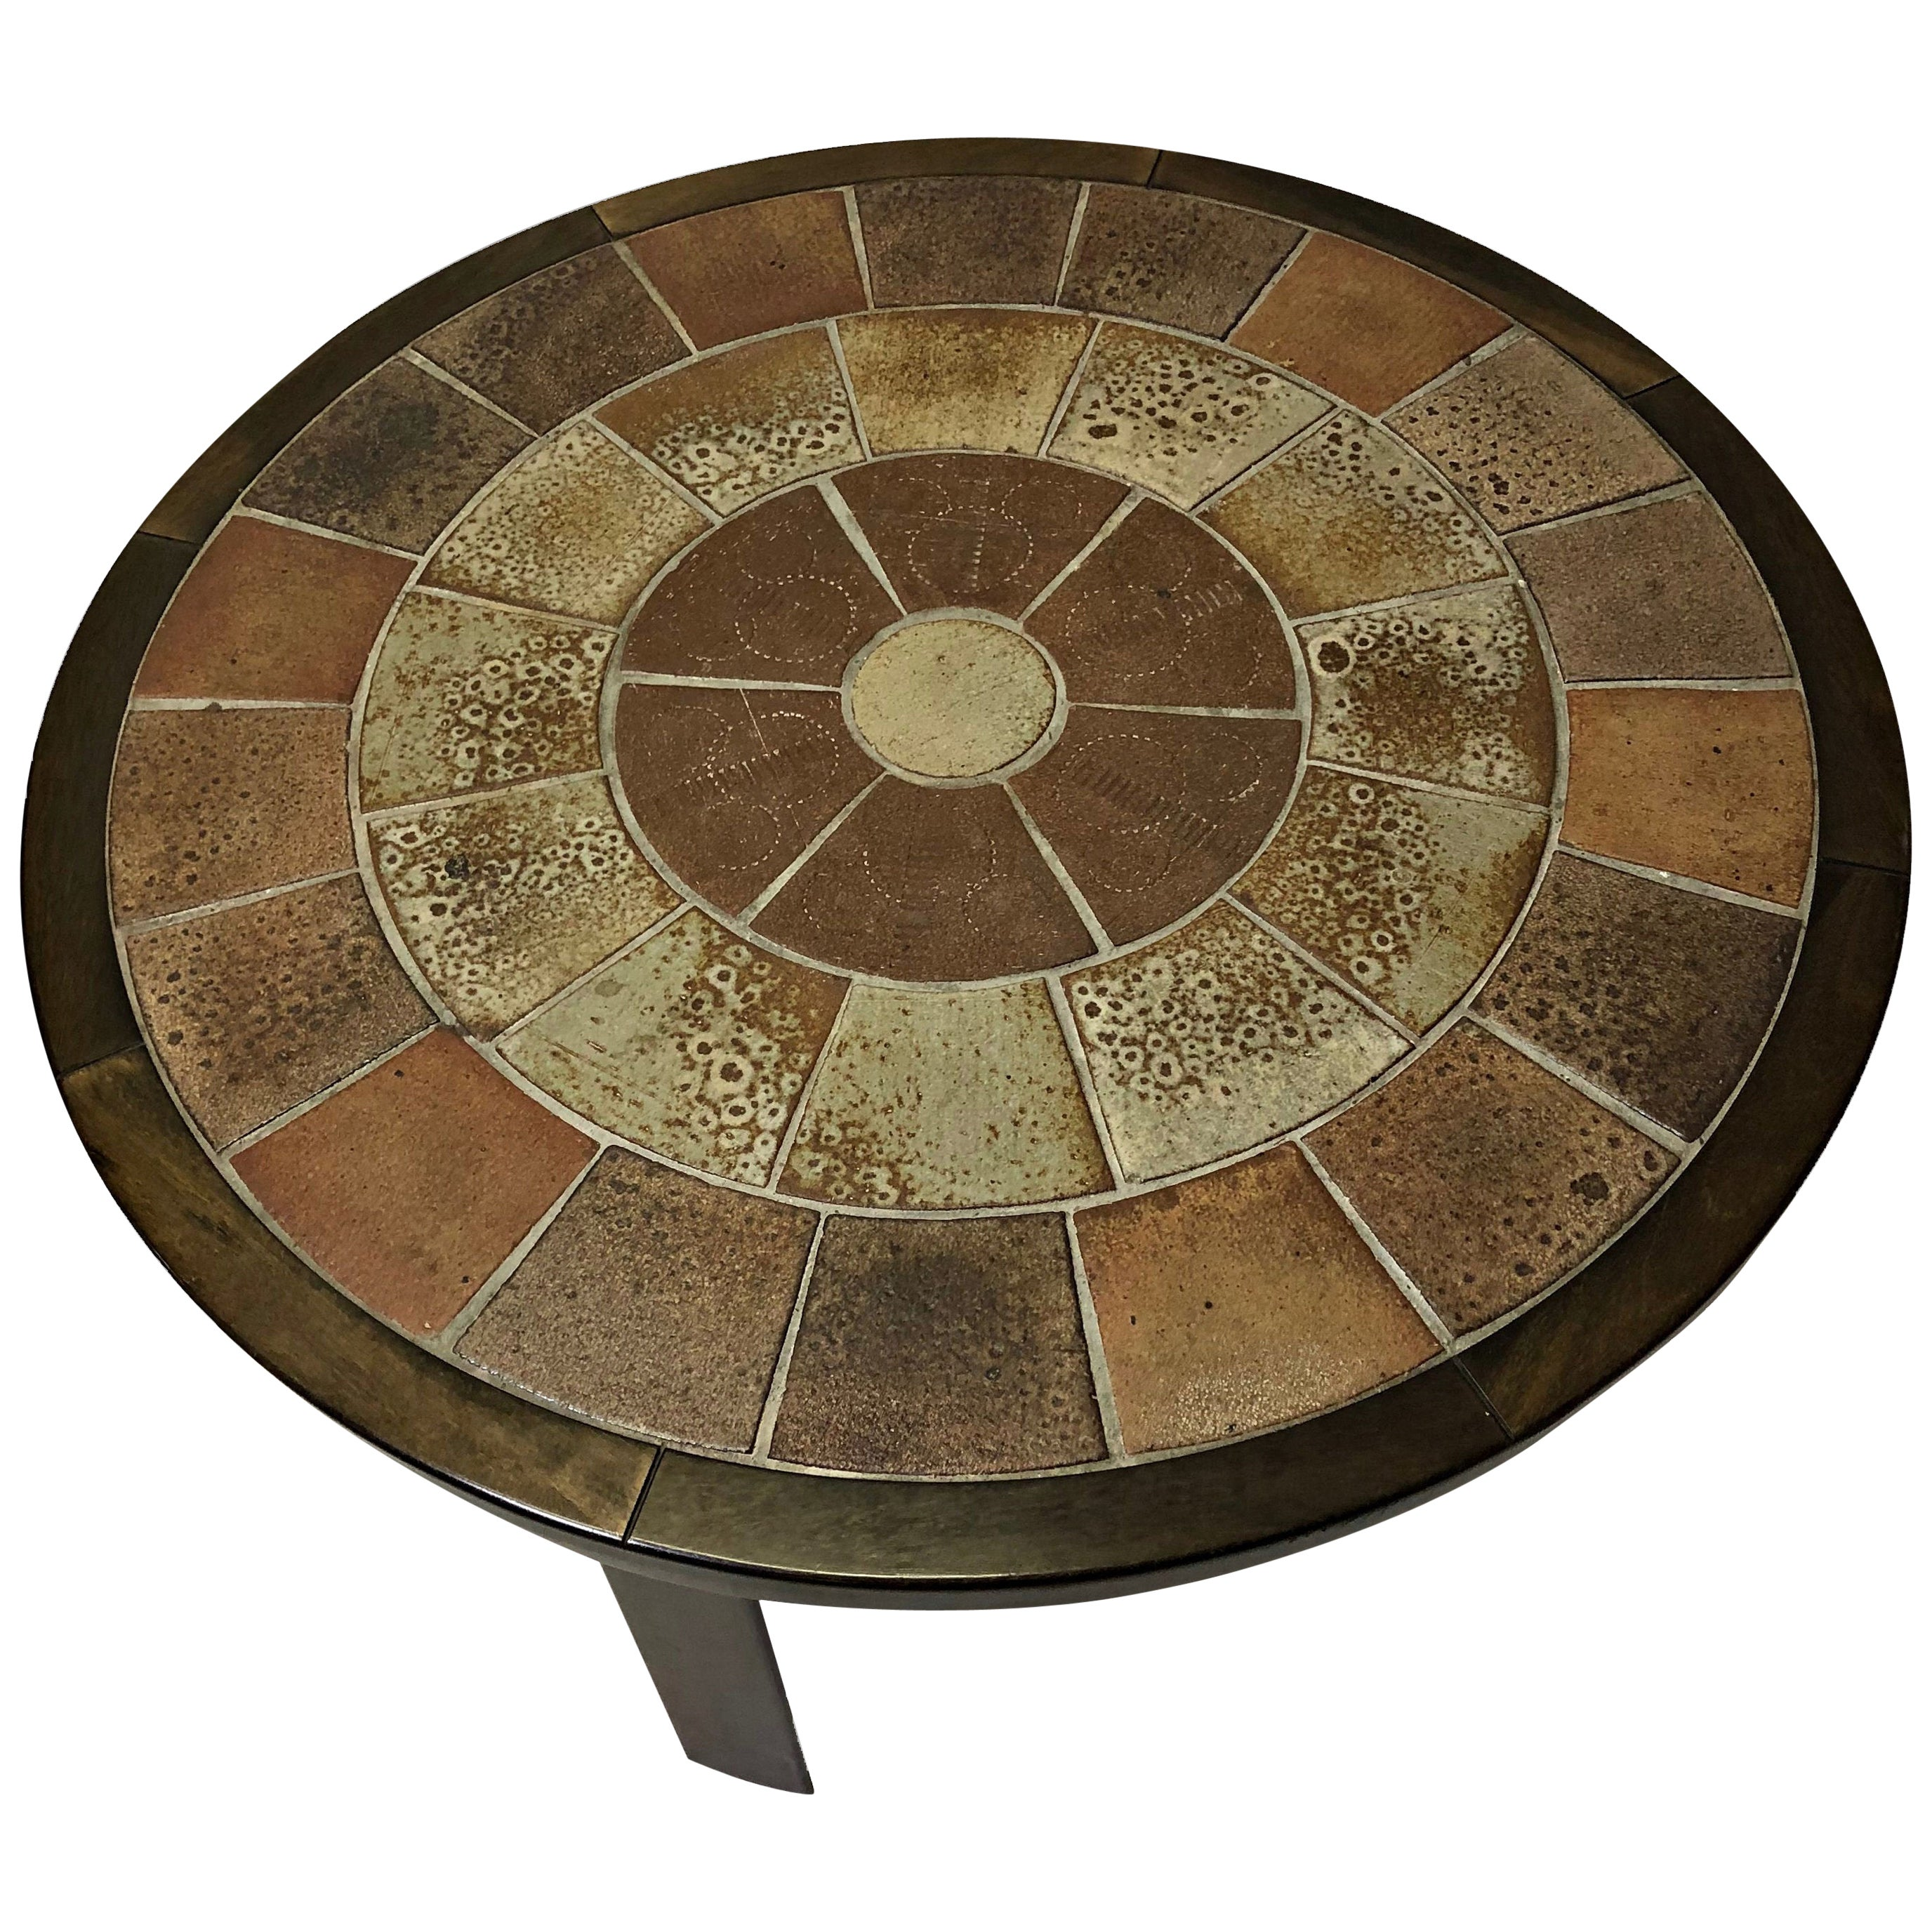 1960s Tue Poulsen Tile Topped Coffee Table in Tanned Oak